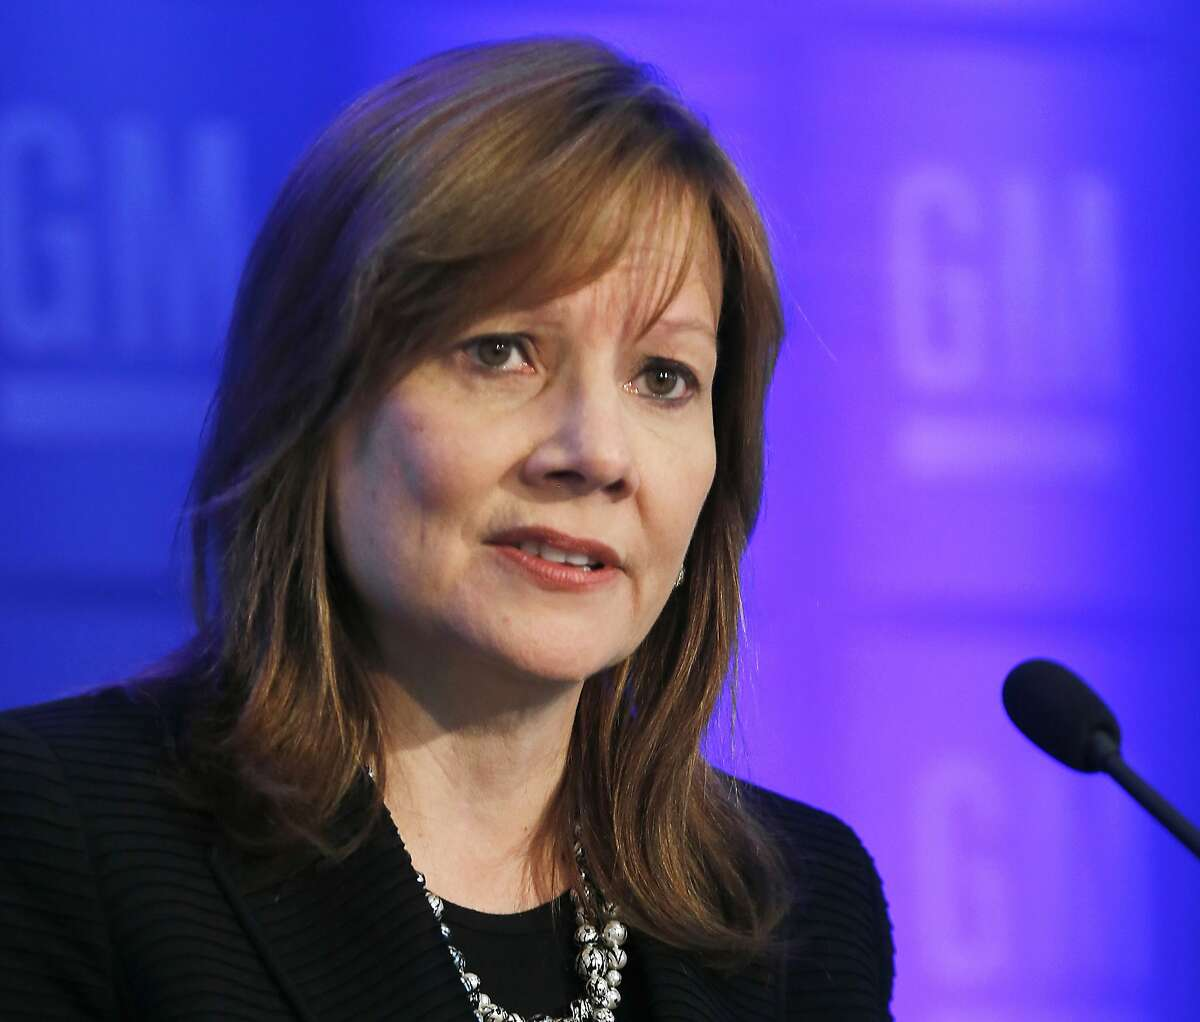 FILE - In this June 10, 2014 file photo General Motors CEO Mary Barra speaks to shareholders in Detroit. Barra is the keynote speaker Sunday, Sept. 7, 2014 at an intelligent transportation conference in Detroit. GM and other automakers will announce new devices that will make roads safer. The devices are steps toward self-driving cars in the future. (AP Photo/Paul Sancya, File)